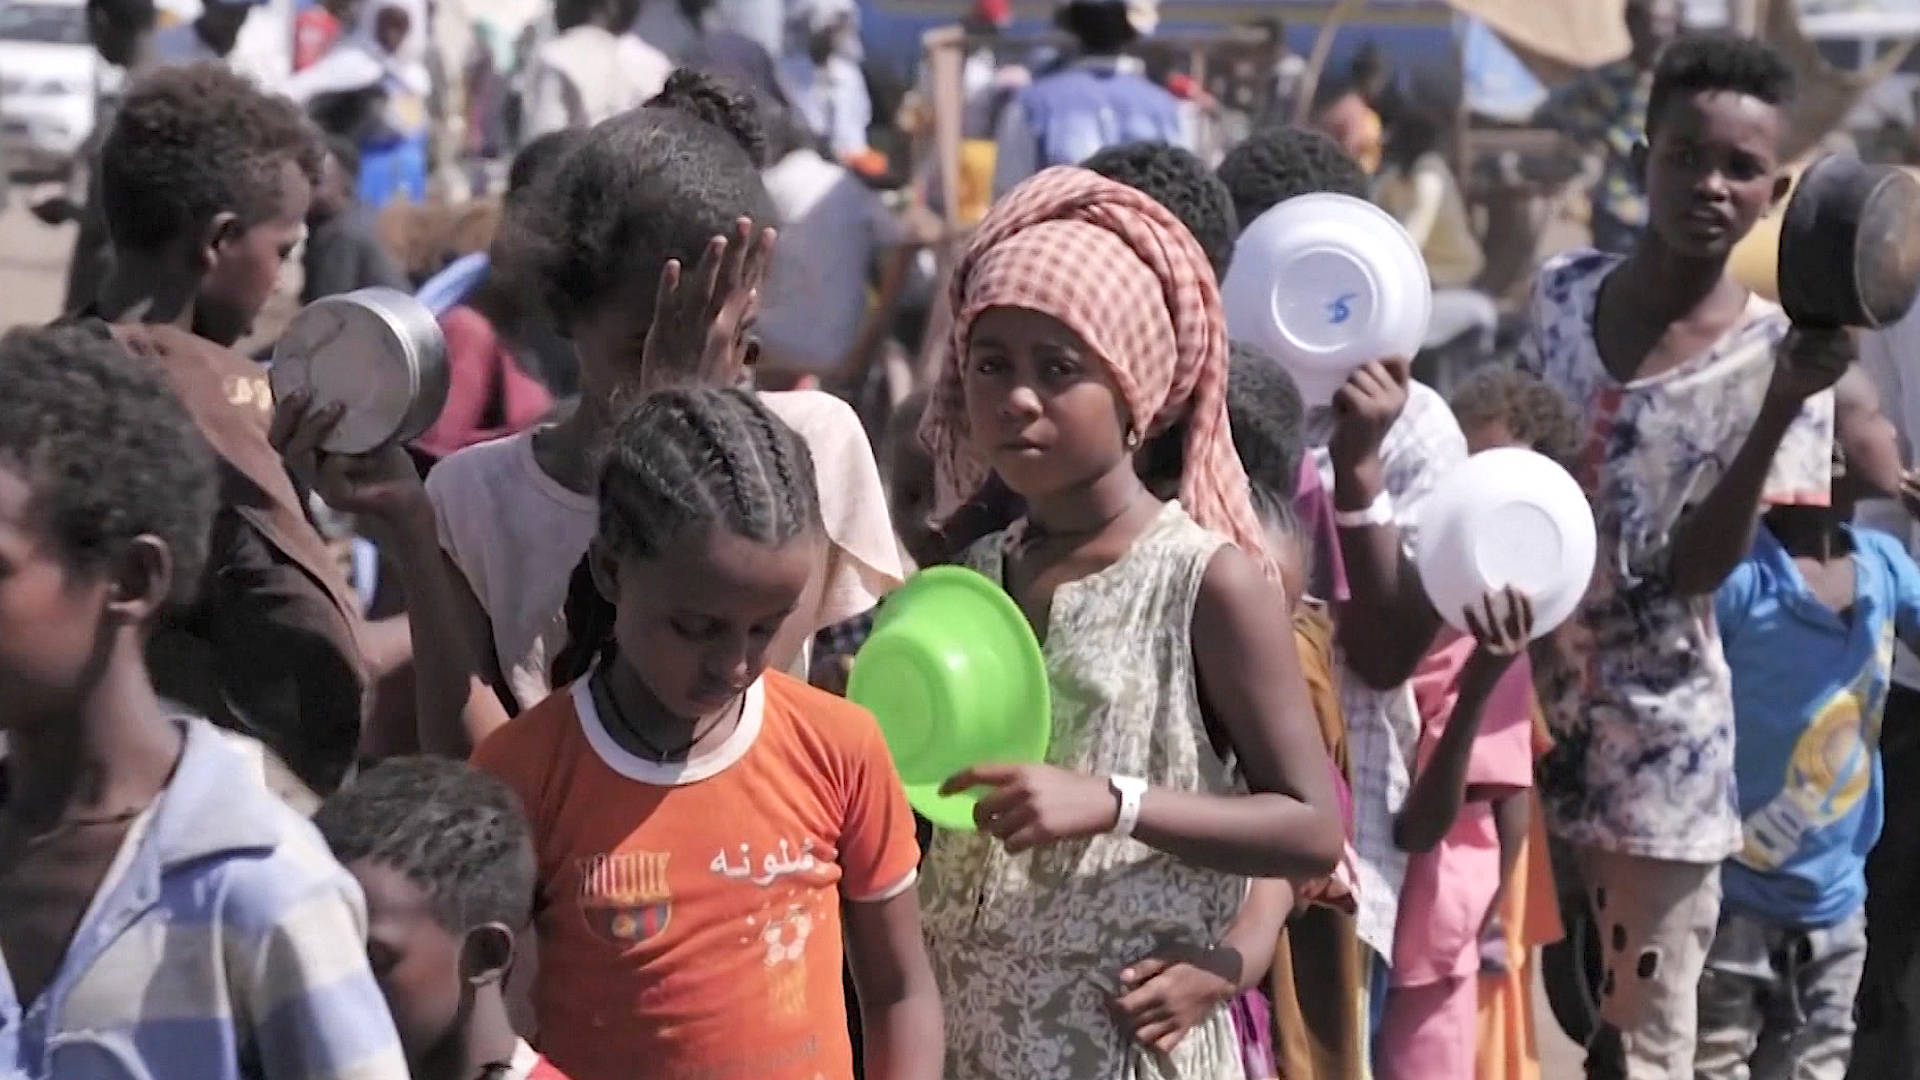 Ethnic Cleansing Feared as Ethiopia Wages War on Tigray Region Amid Communication Blackout